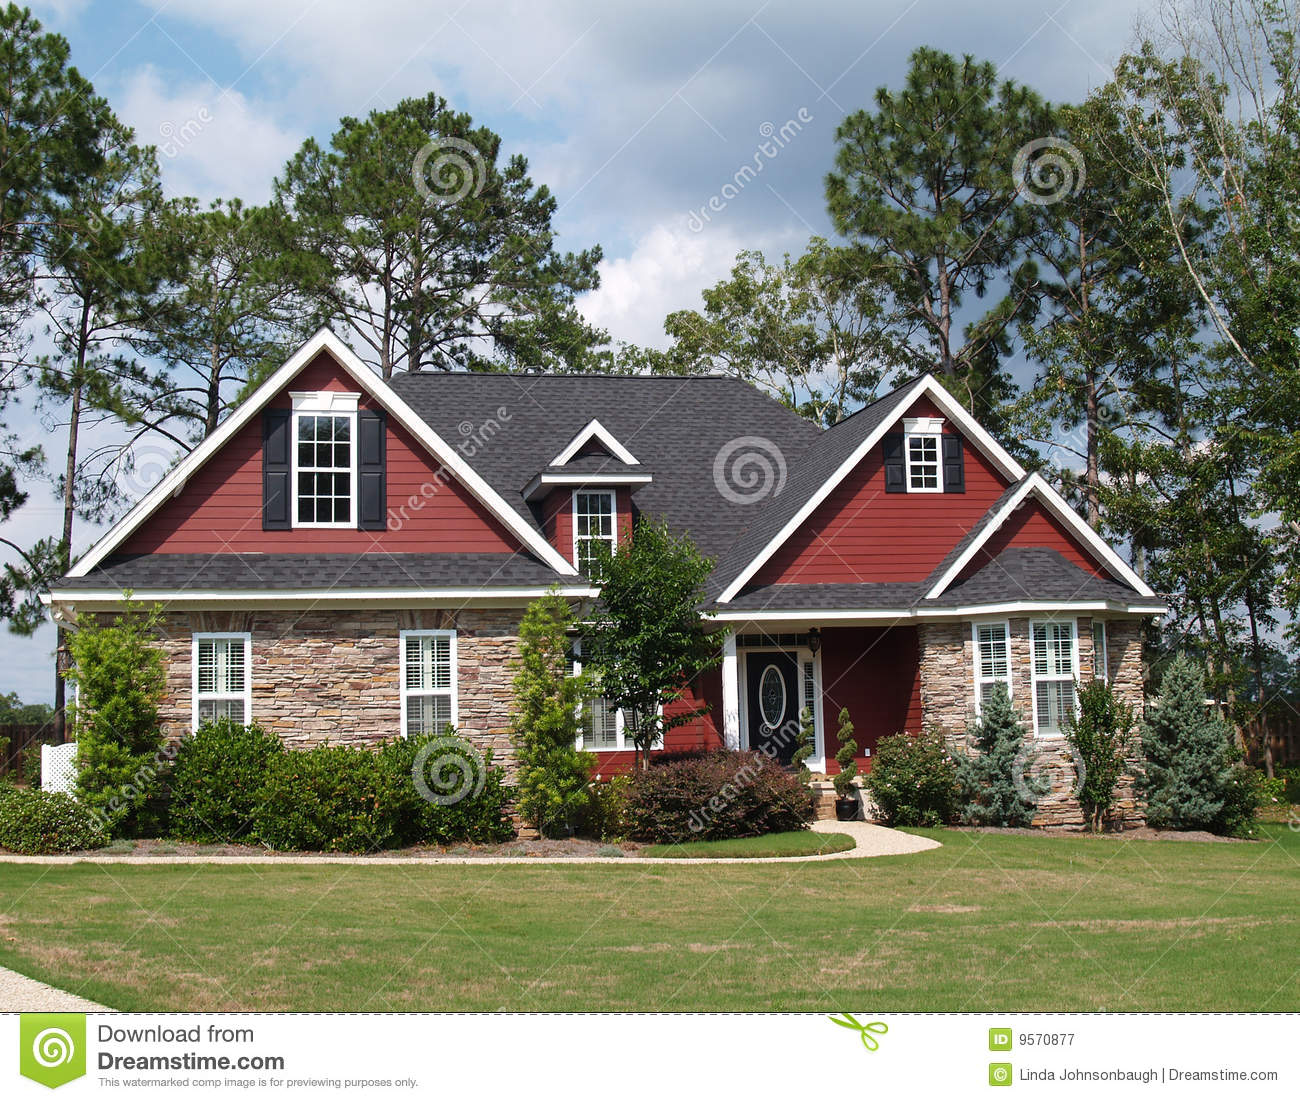 Two Storey Residential House With Attic: Two Story Residential Home Royalty Free Stock Photography